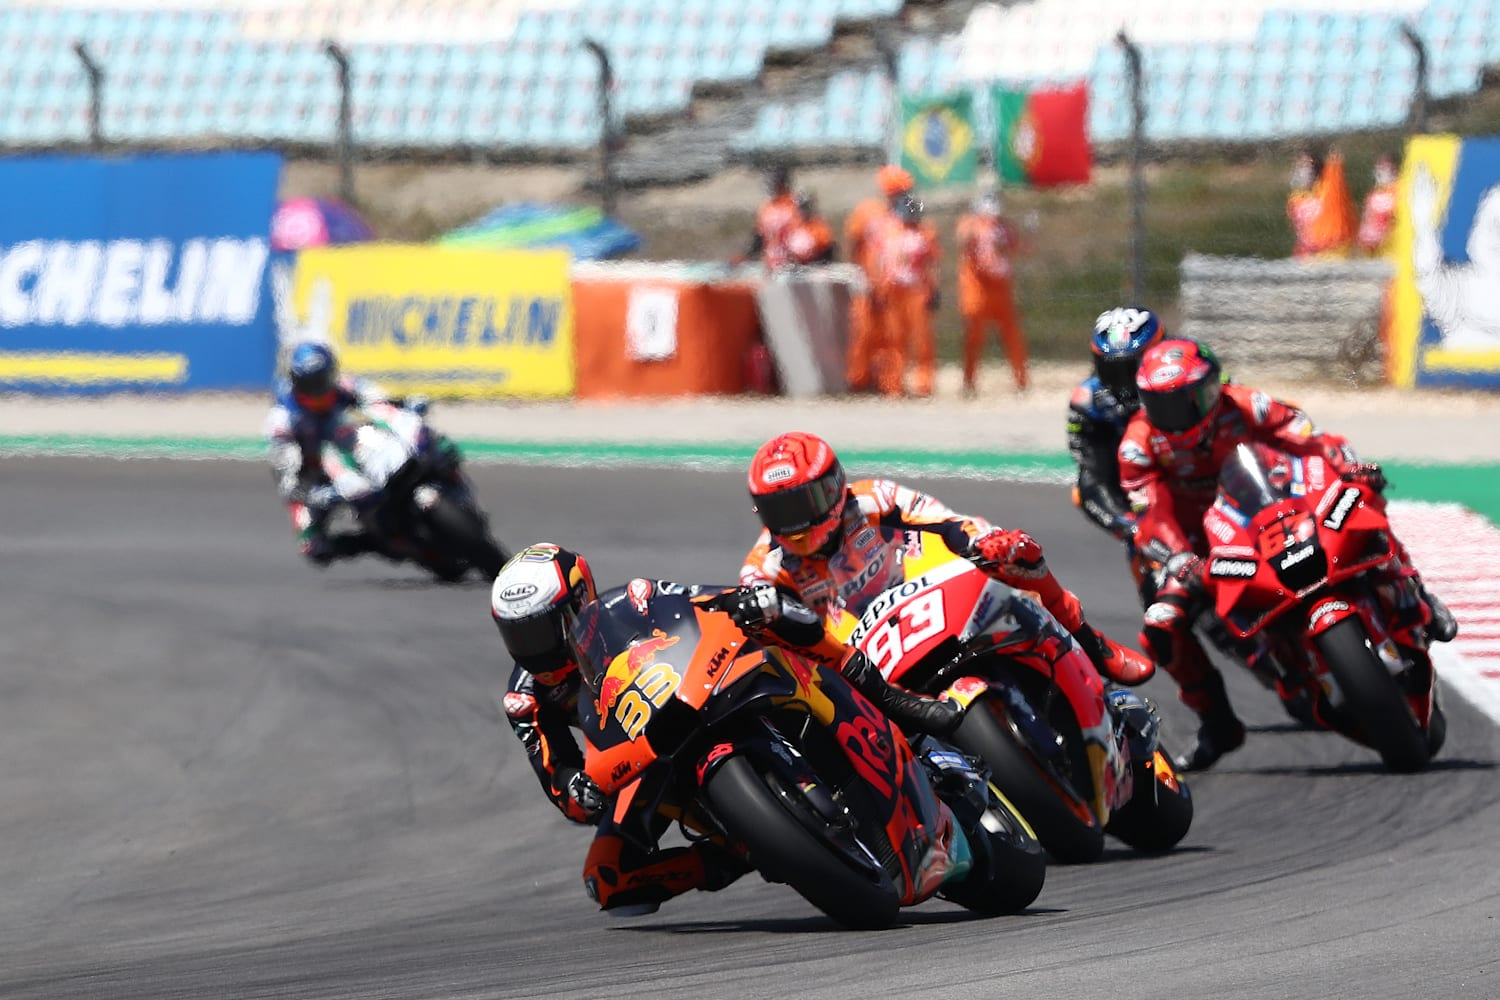 Portugal MotoGP™ 2021: Race report and results